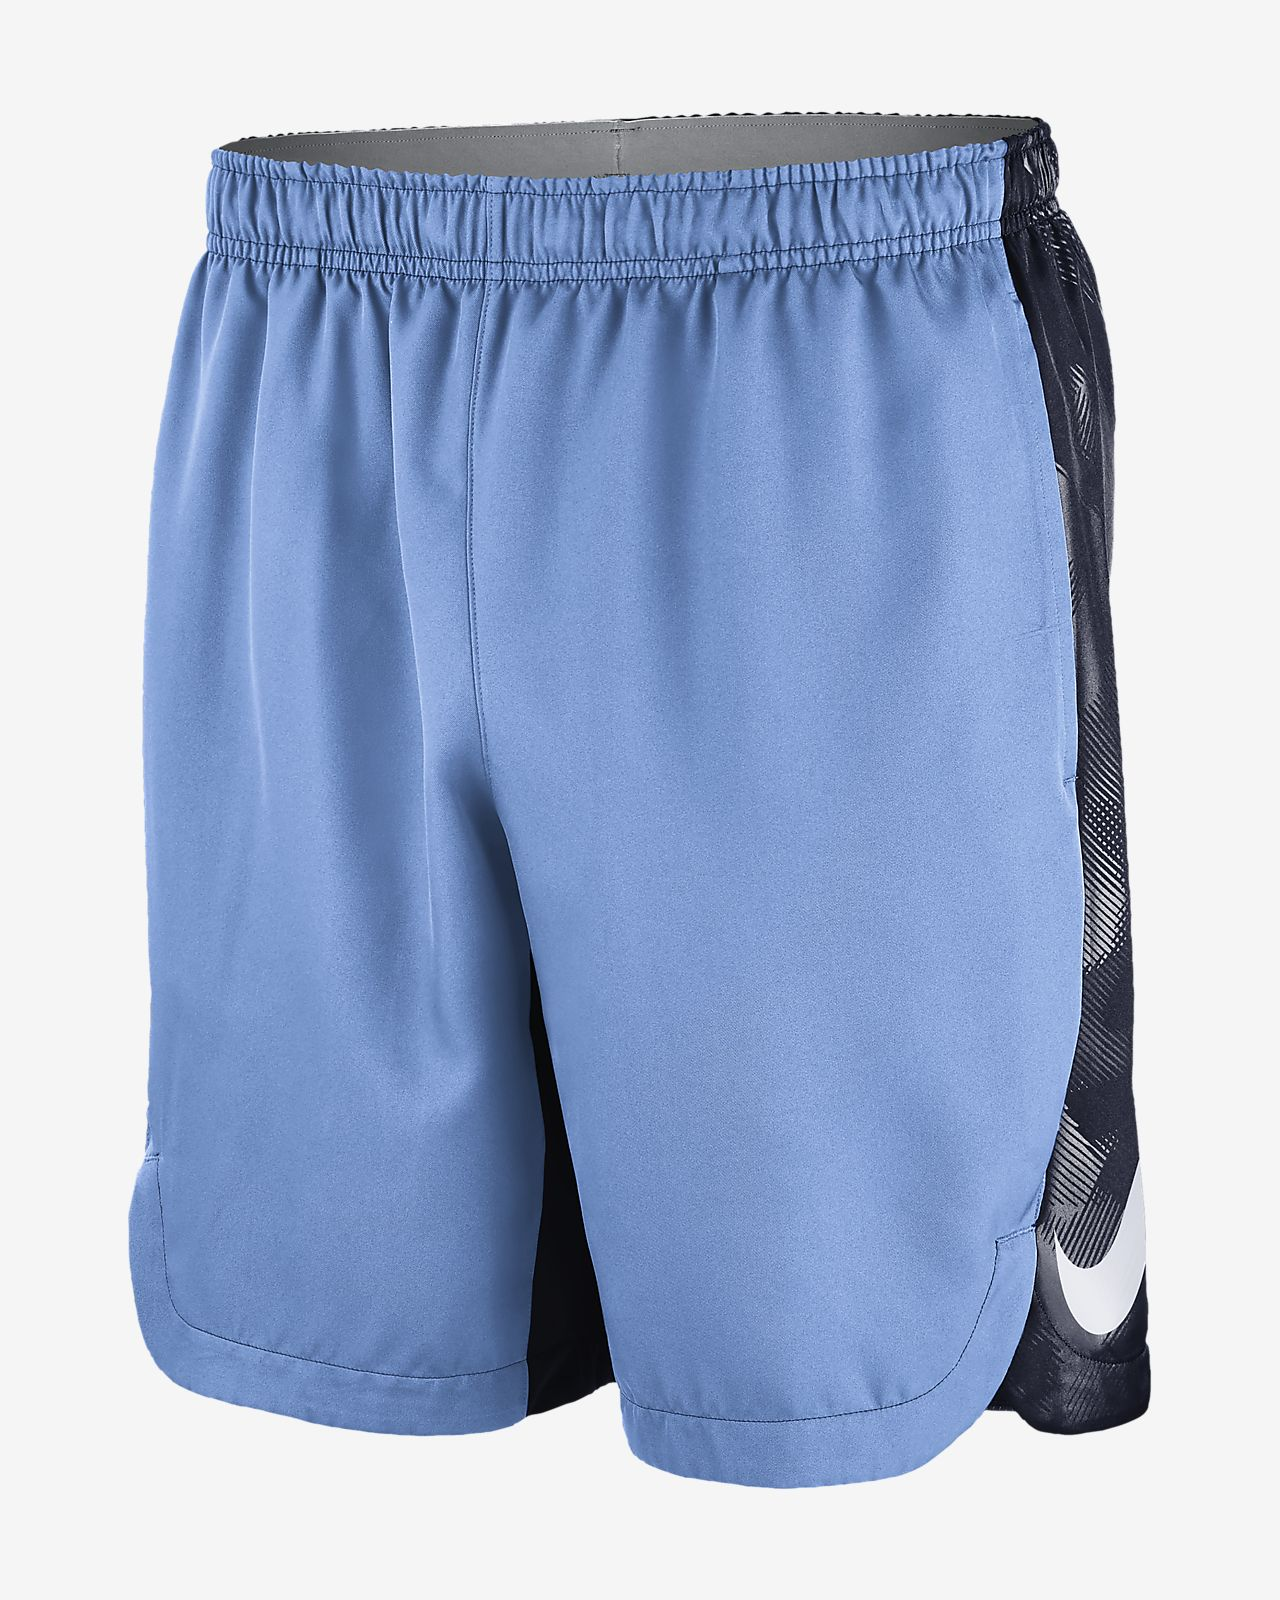 Nike Dri-FIT (MLB Rays) Men's Shorts